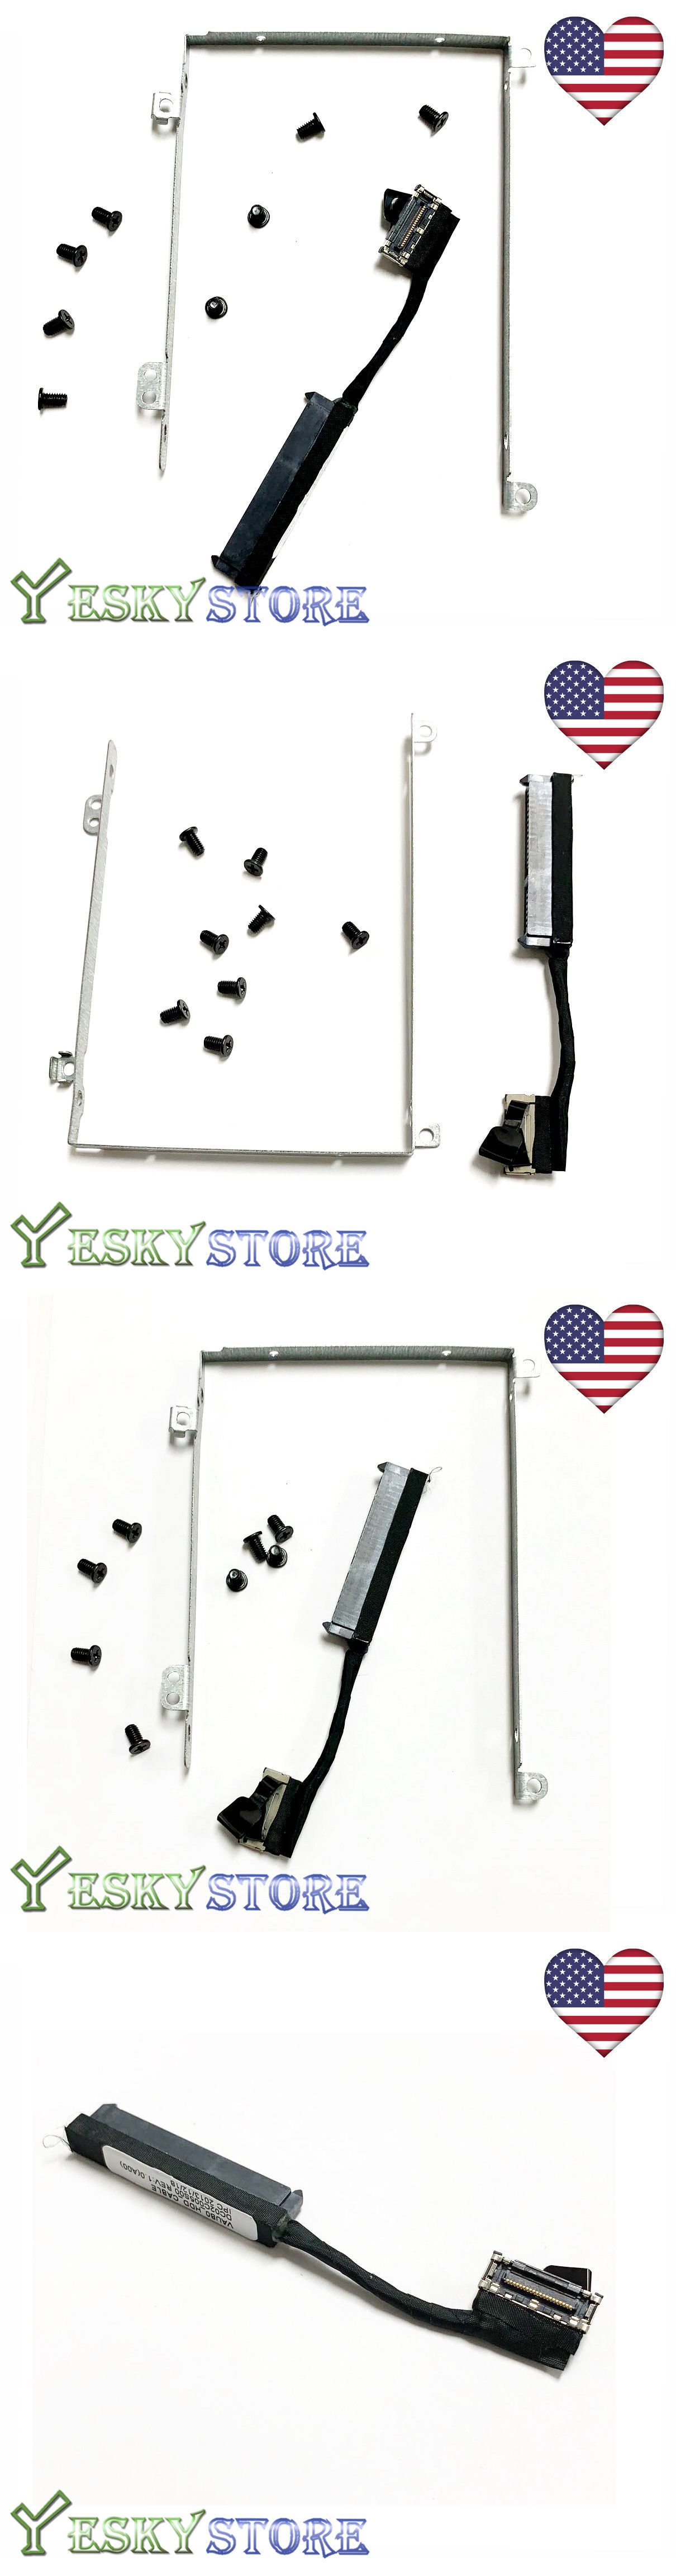 for DELL Precision M3800 XPS15 9530 Hard Drive HDD Backet Caddy /& Cable /& Screws